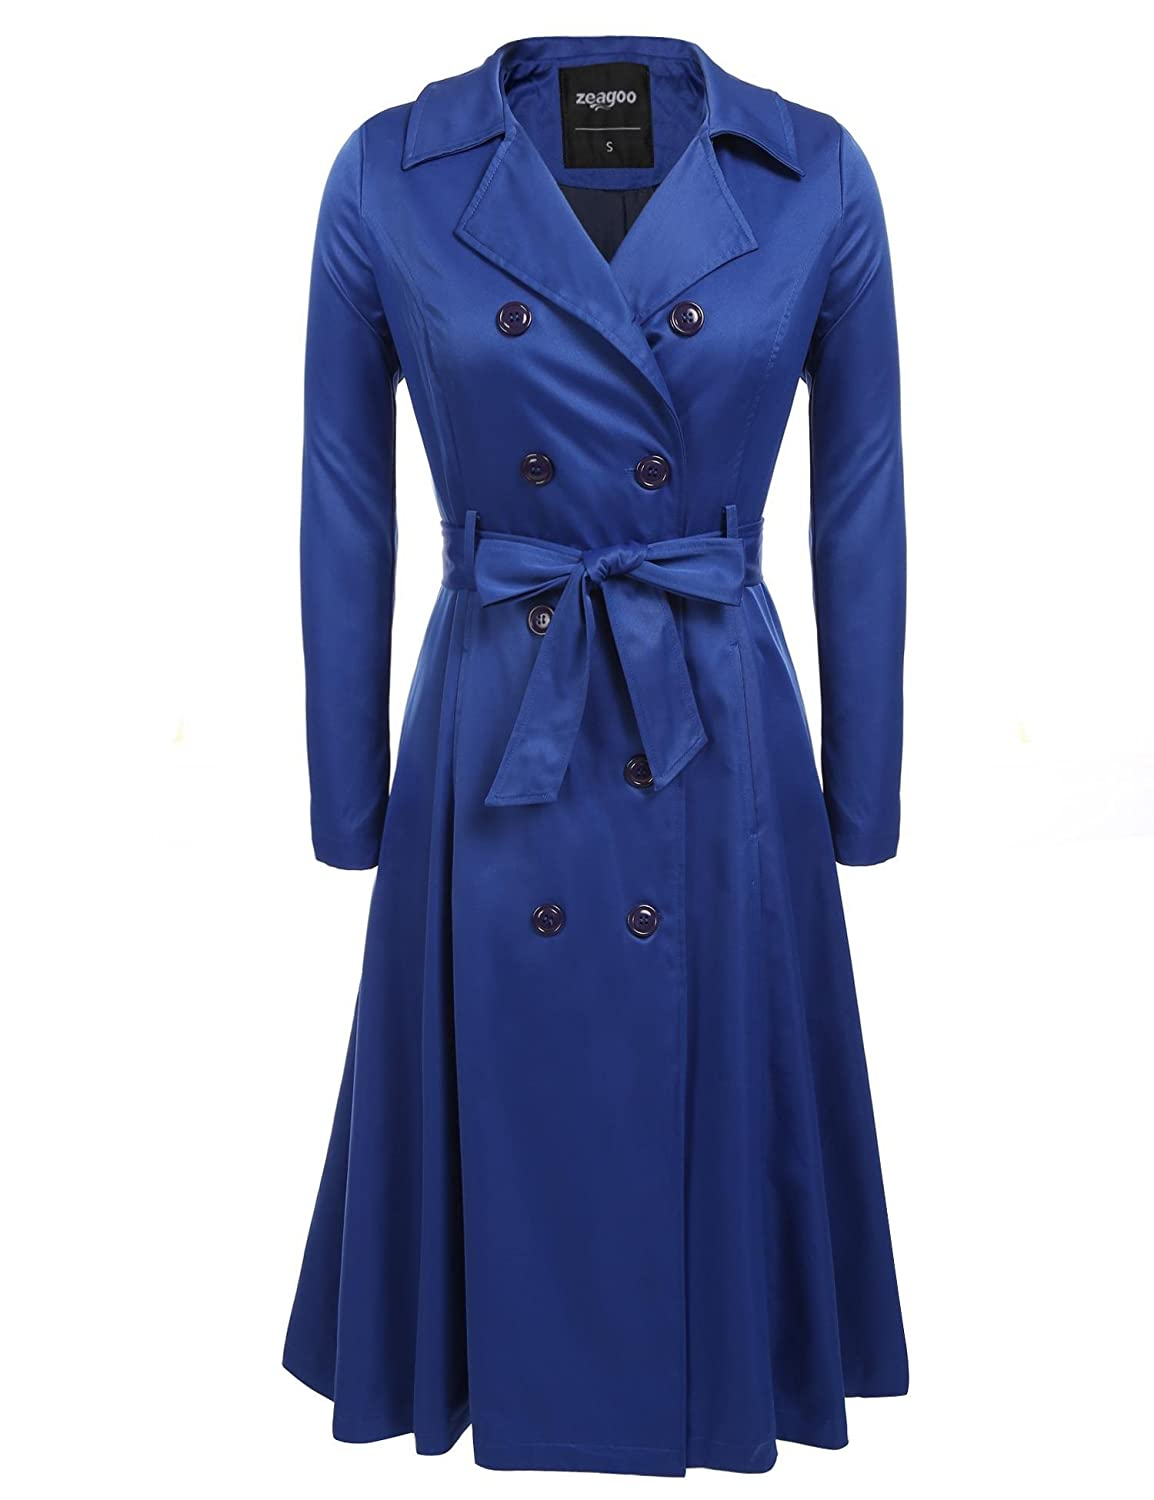 1930s Style Coats, Jackets | Art Deco Outerwear Zeagoo Womens Double-Breasted Long Trench Coat with Belt $59.88 AT vintagedancer.com